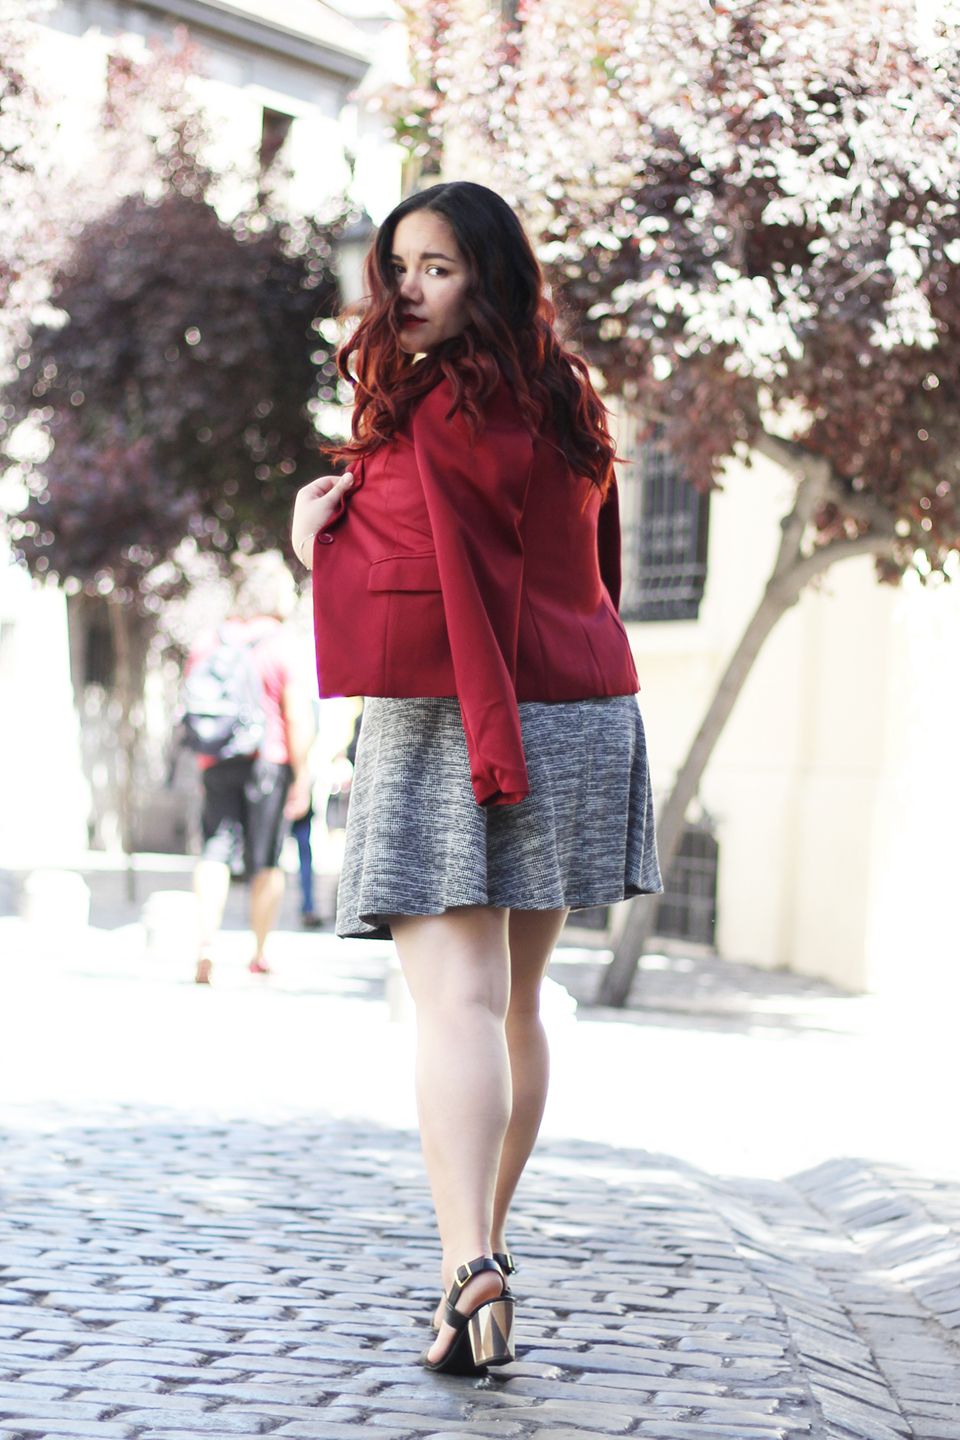 christmas-look-merry-holidays-h&m-dafiti-chile-street-style-summer-blazer-red